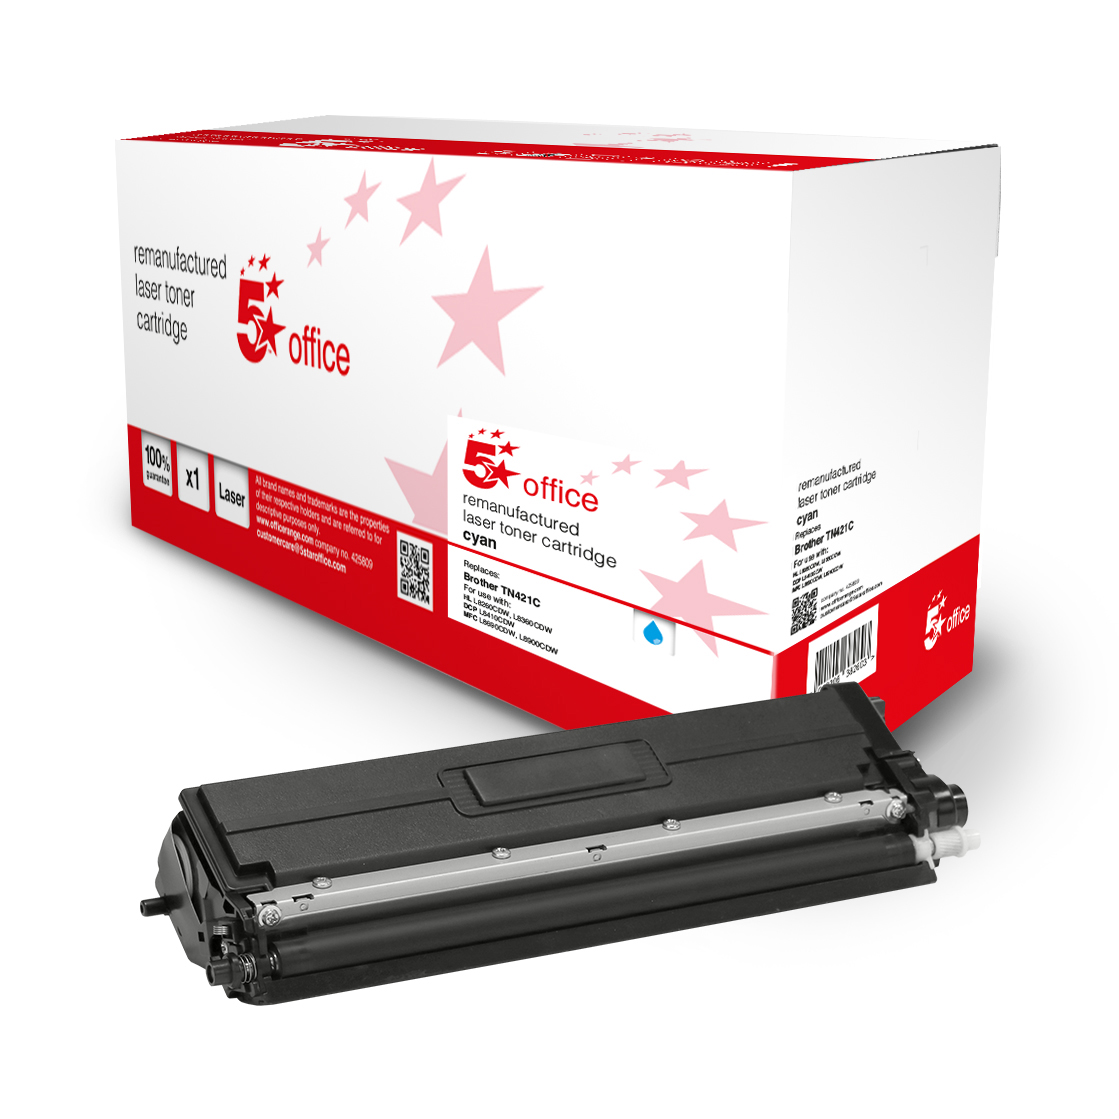 Laser Toner Cartridges 5 Star Office Remanufactured Toner Cartridge Page Life Cyan 1800pp Brother TN421C Alternative